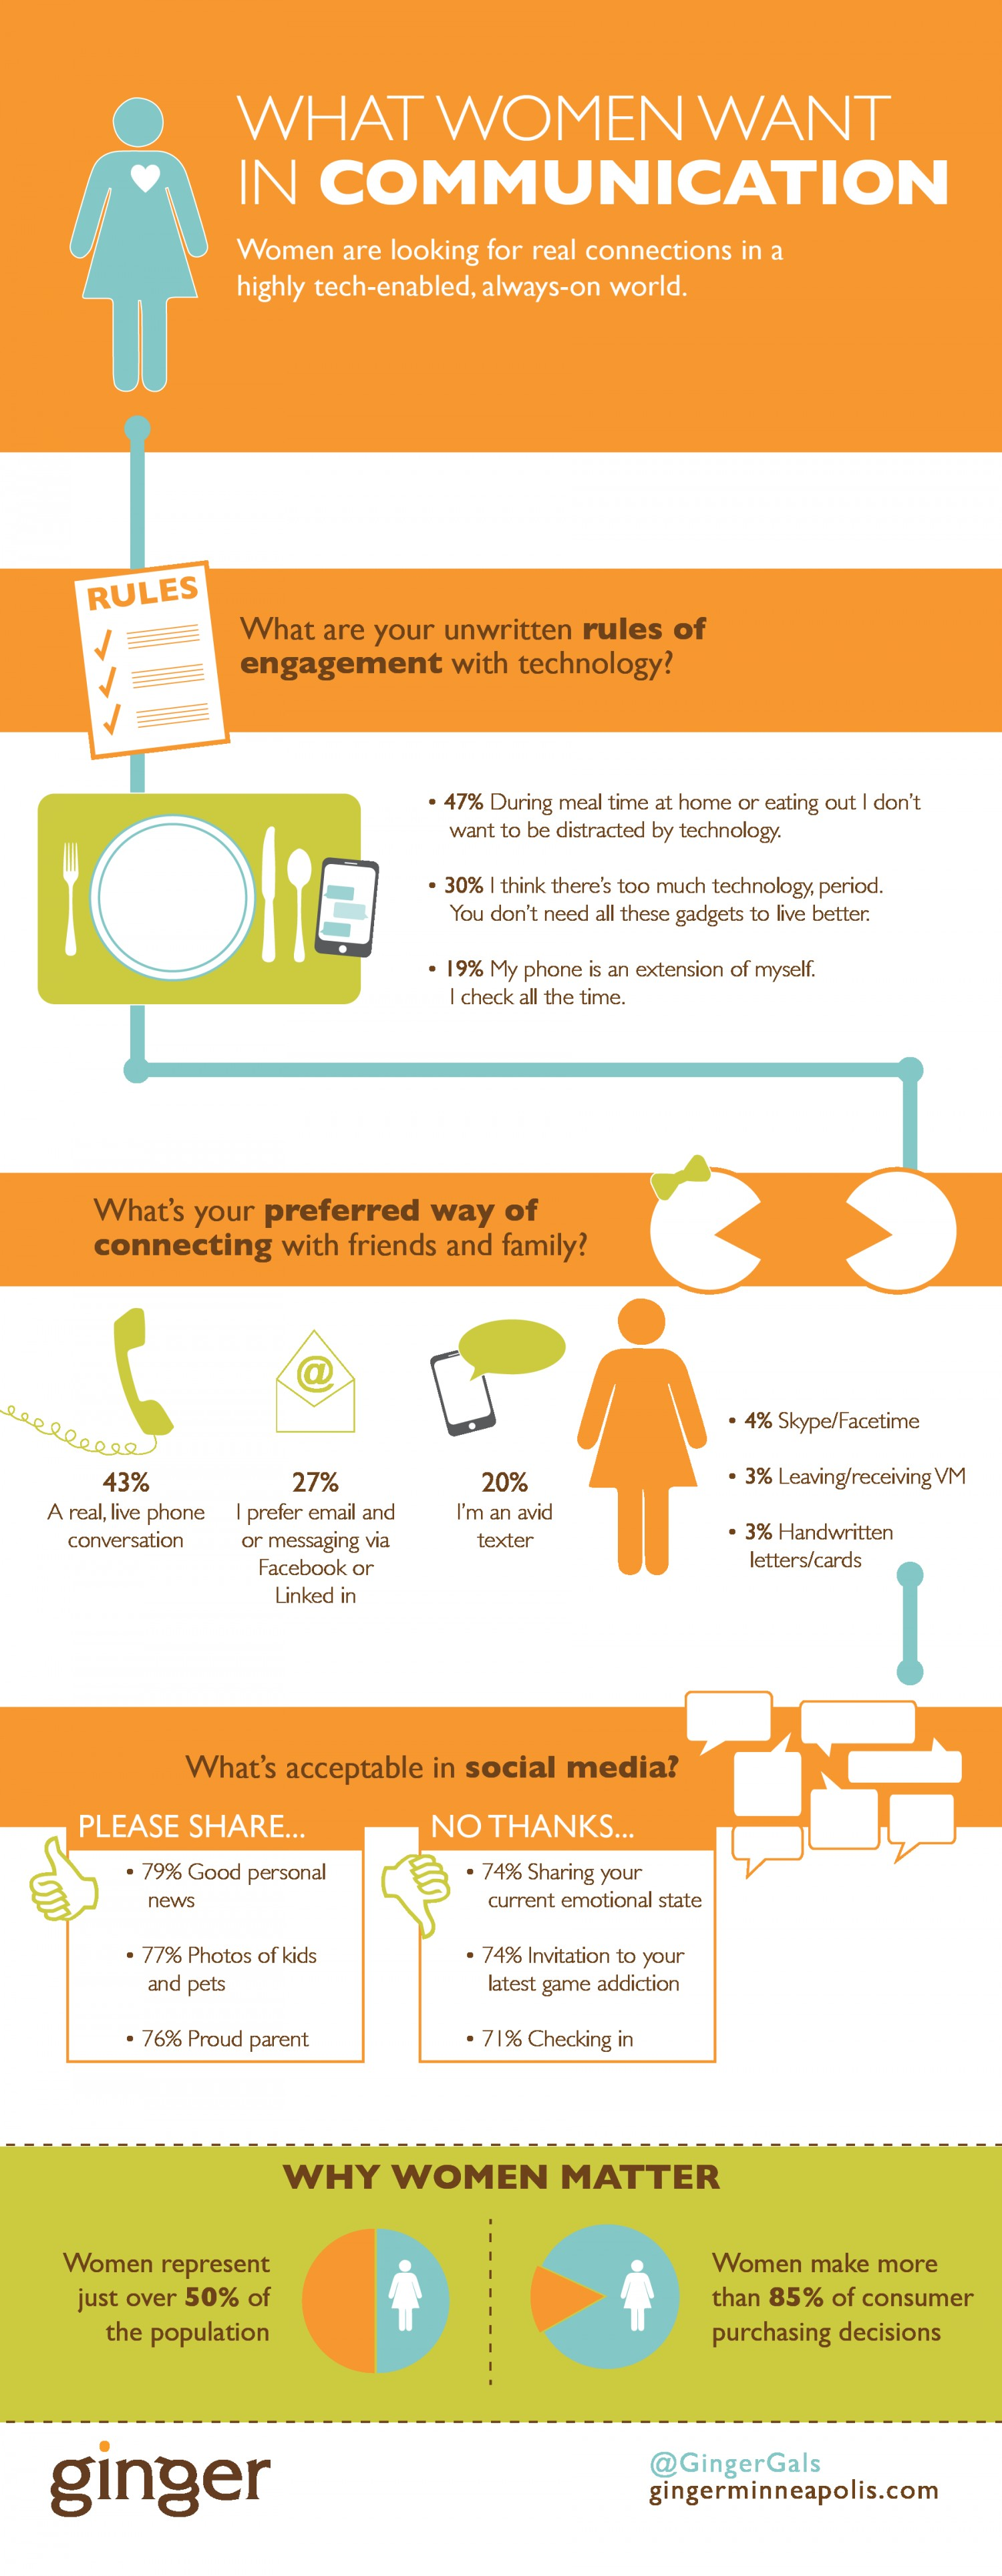 7. What women want in communication